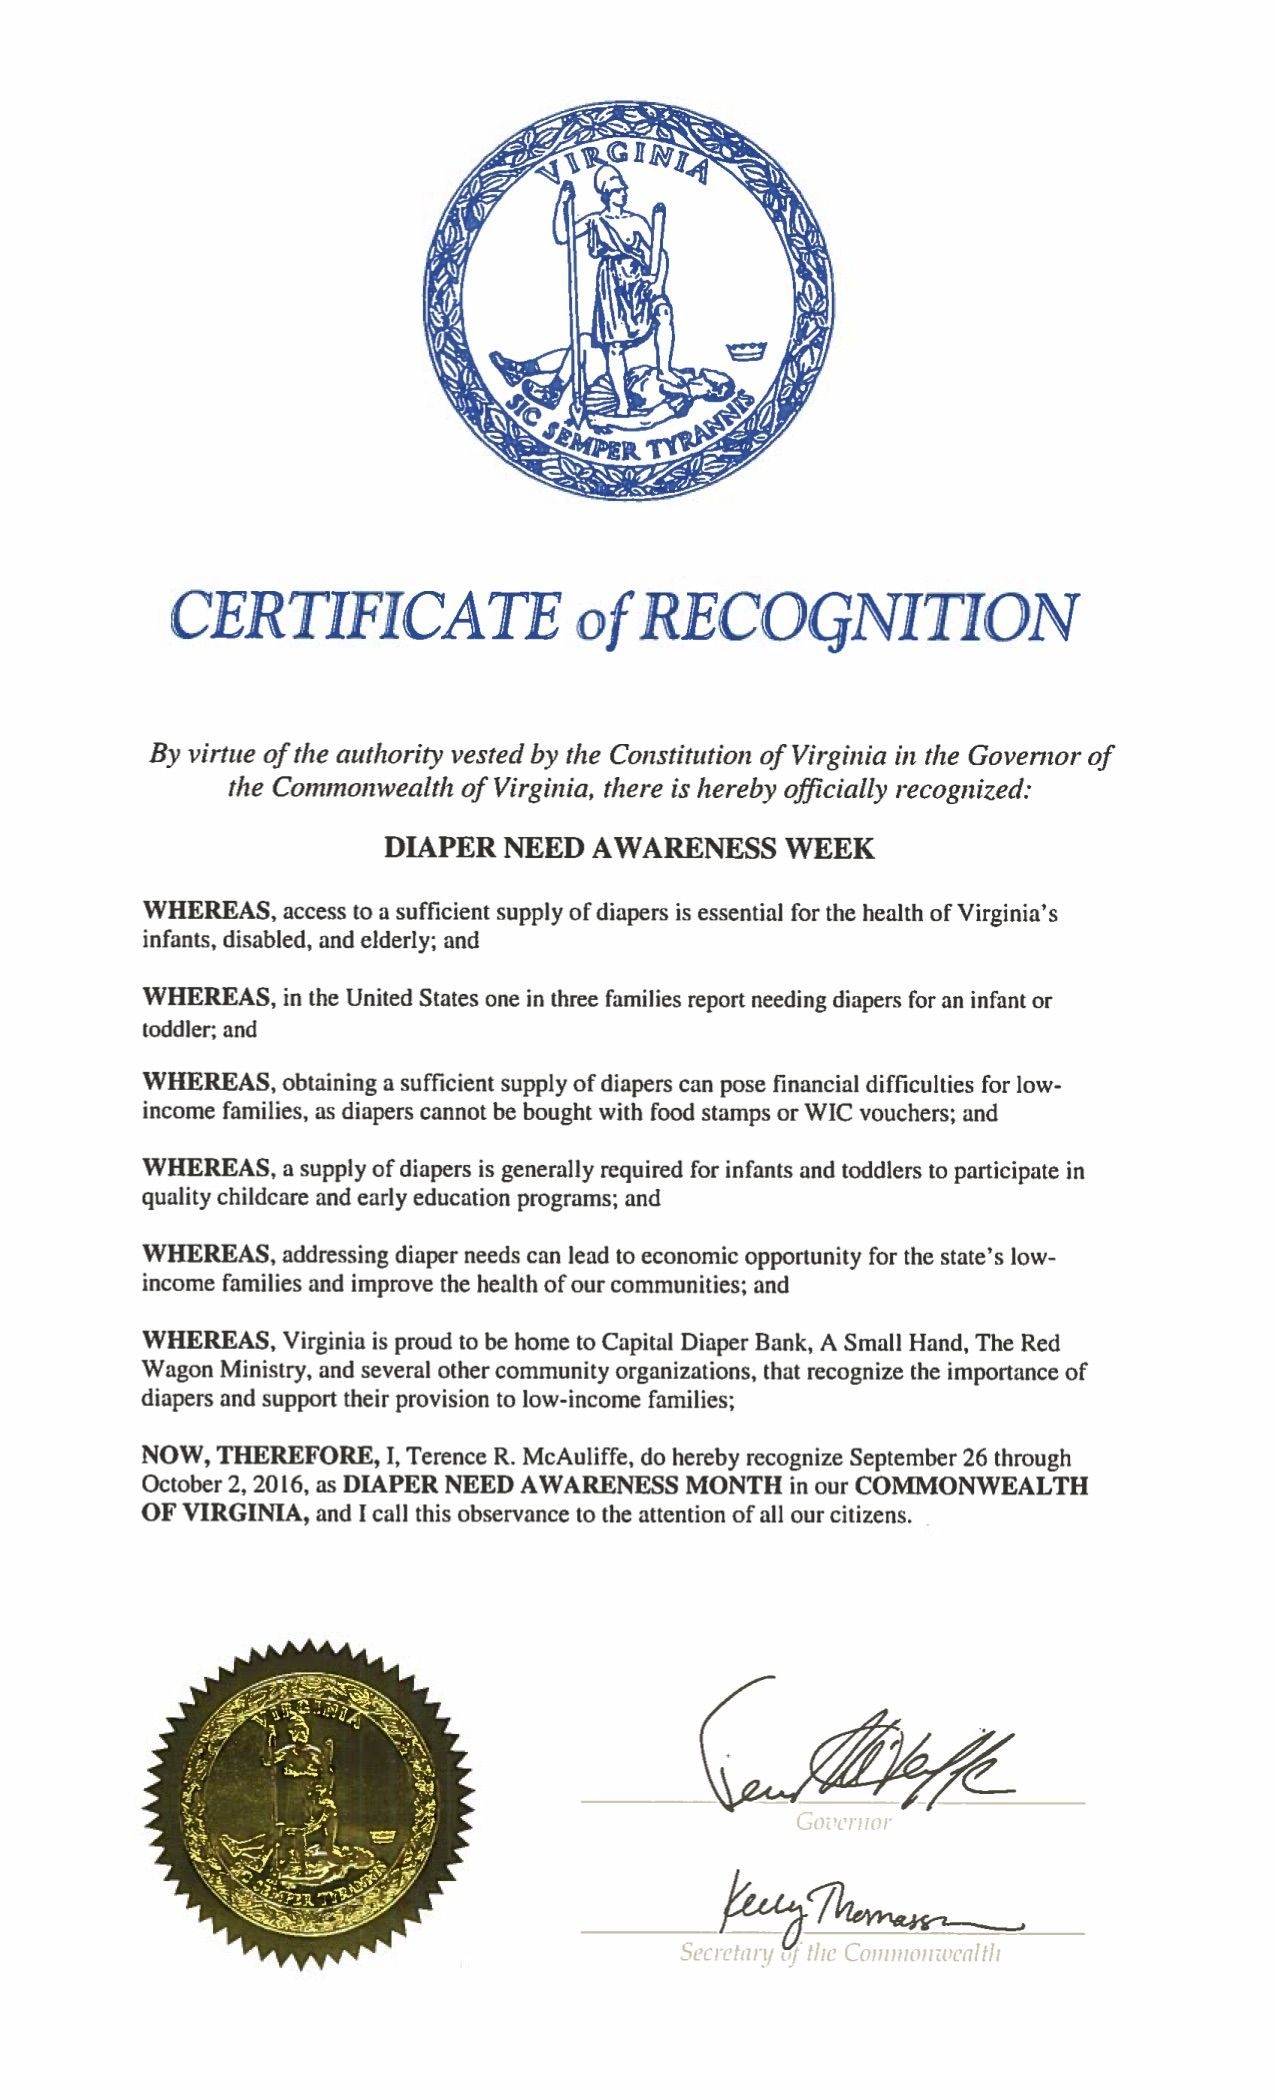 VIRGINIA- Governor Terry McAuliffe proclamation recognizing Diaper Need Awareness Week (Sep. 26-Oct. 2, 2016) #DiaperNeed Diaperneed.org